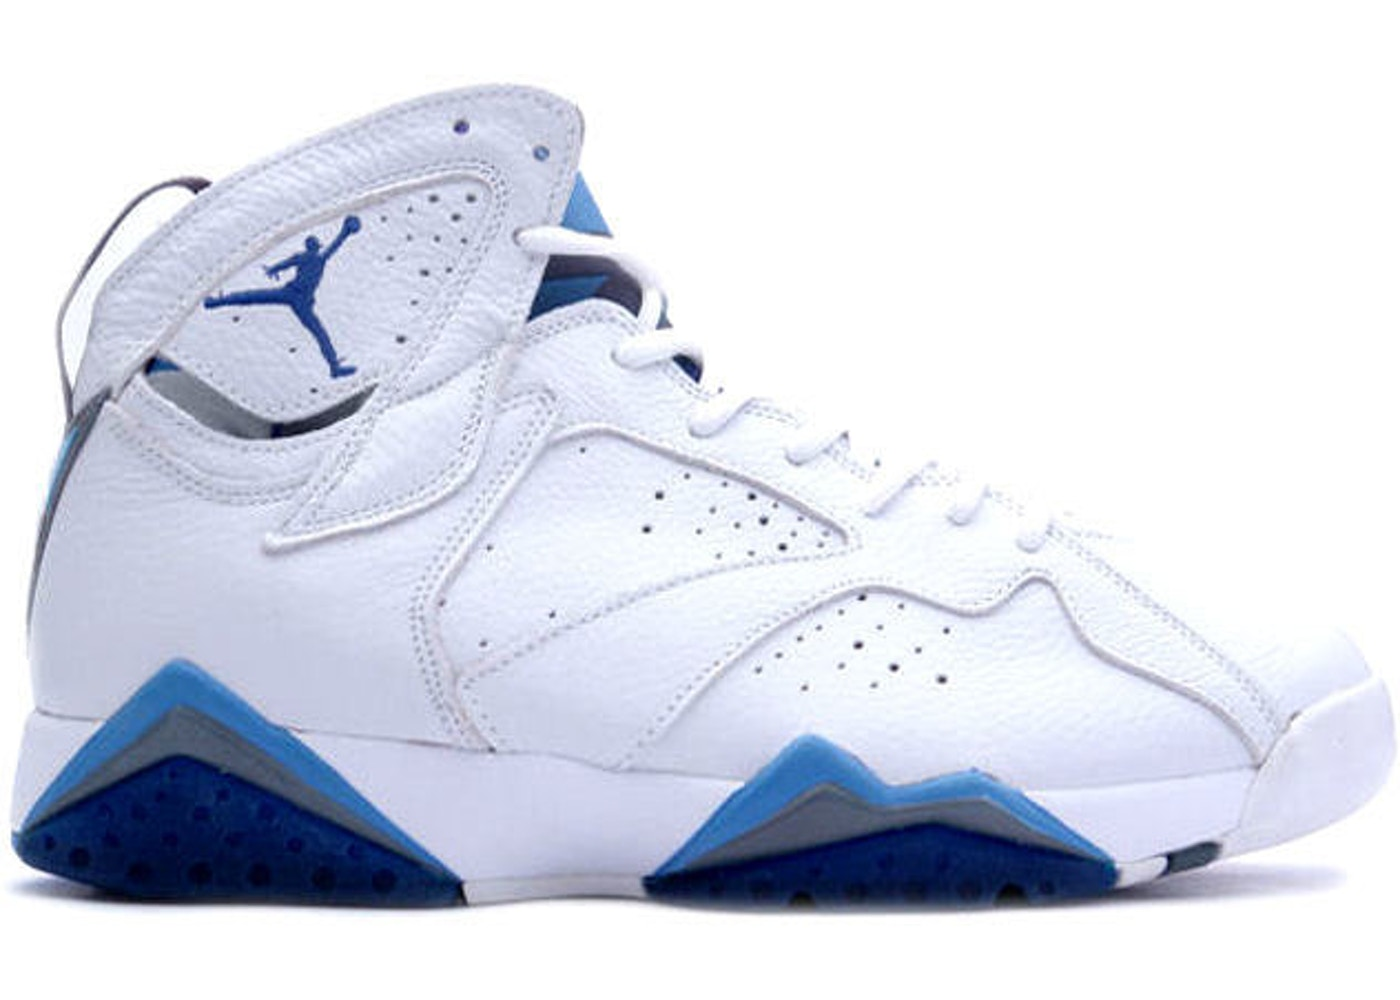 buy popular 8b22c fa543 Jordan 7 Retro French Blue (2002)